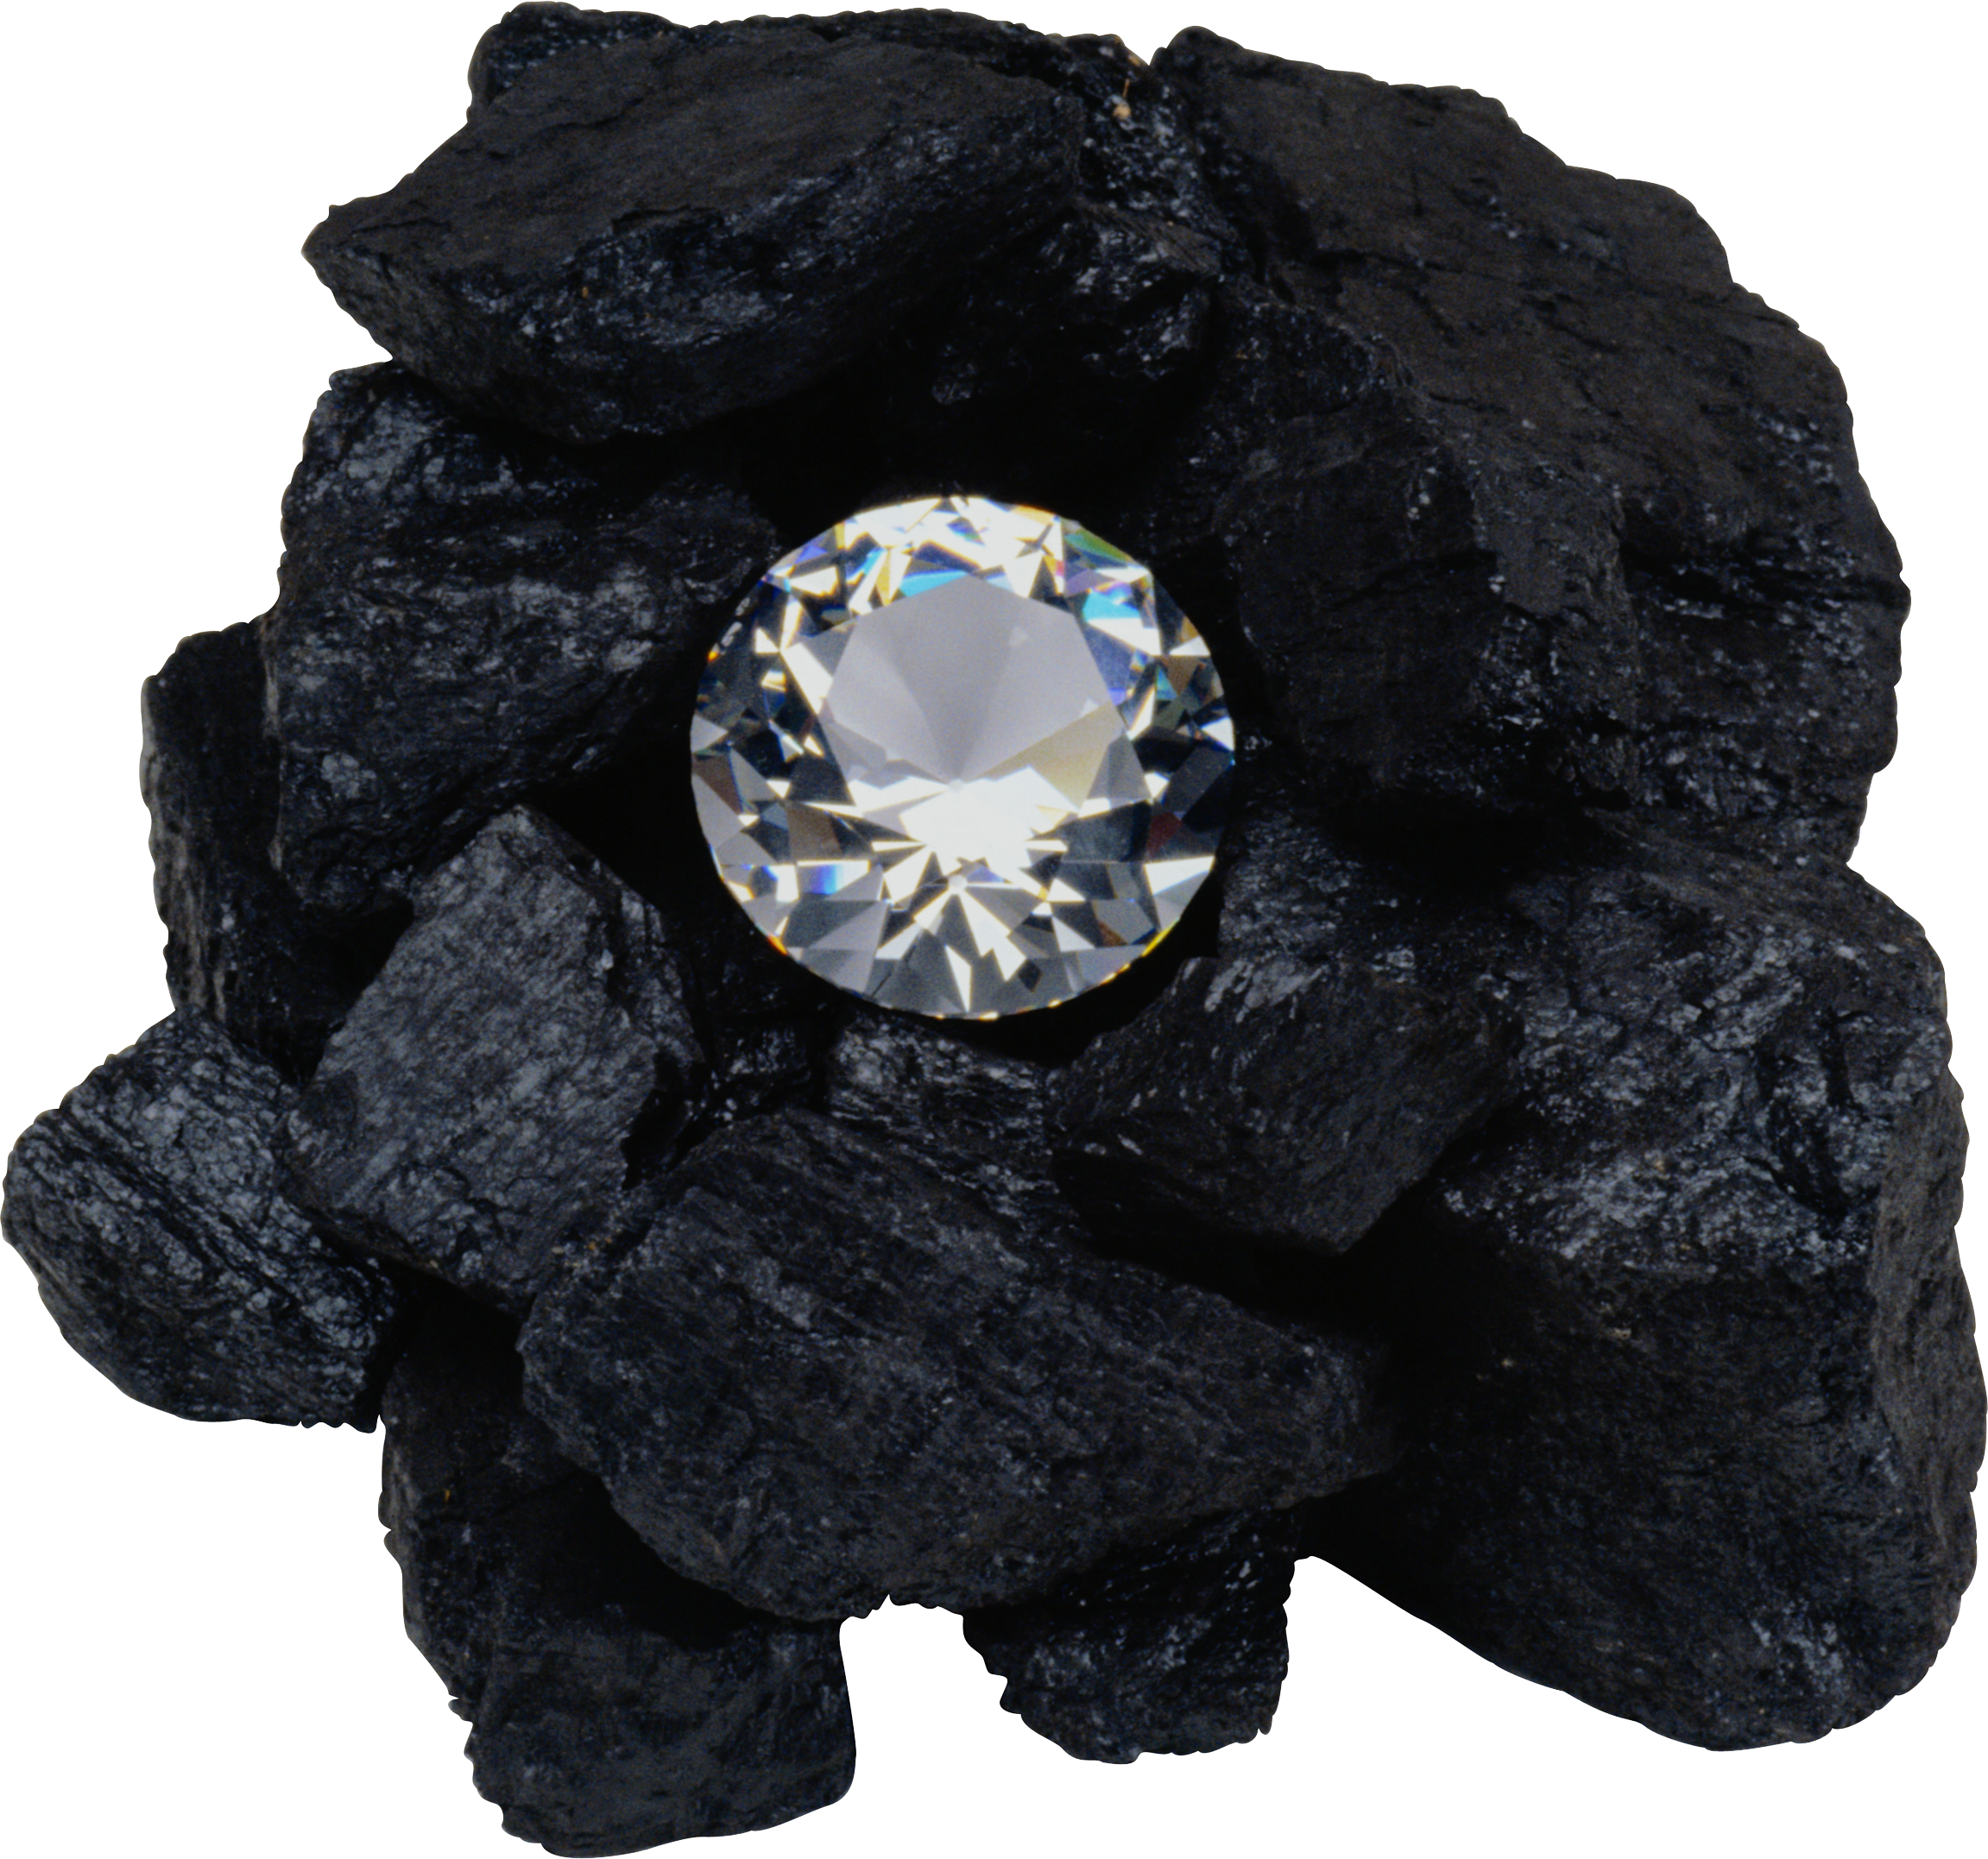 pressure diamond kissinger coal henry that chunk made under a good of is quote